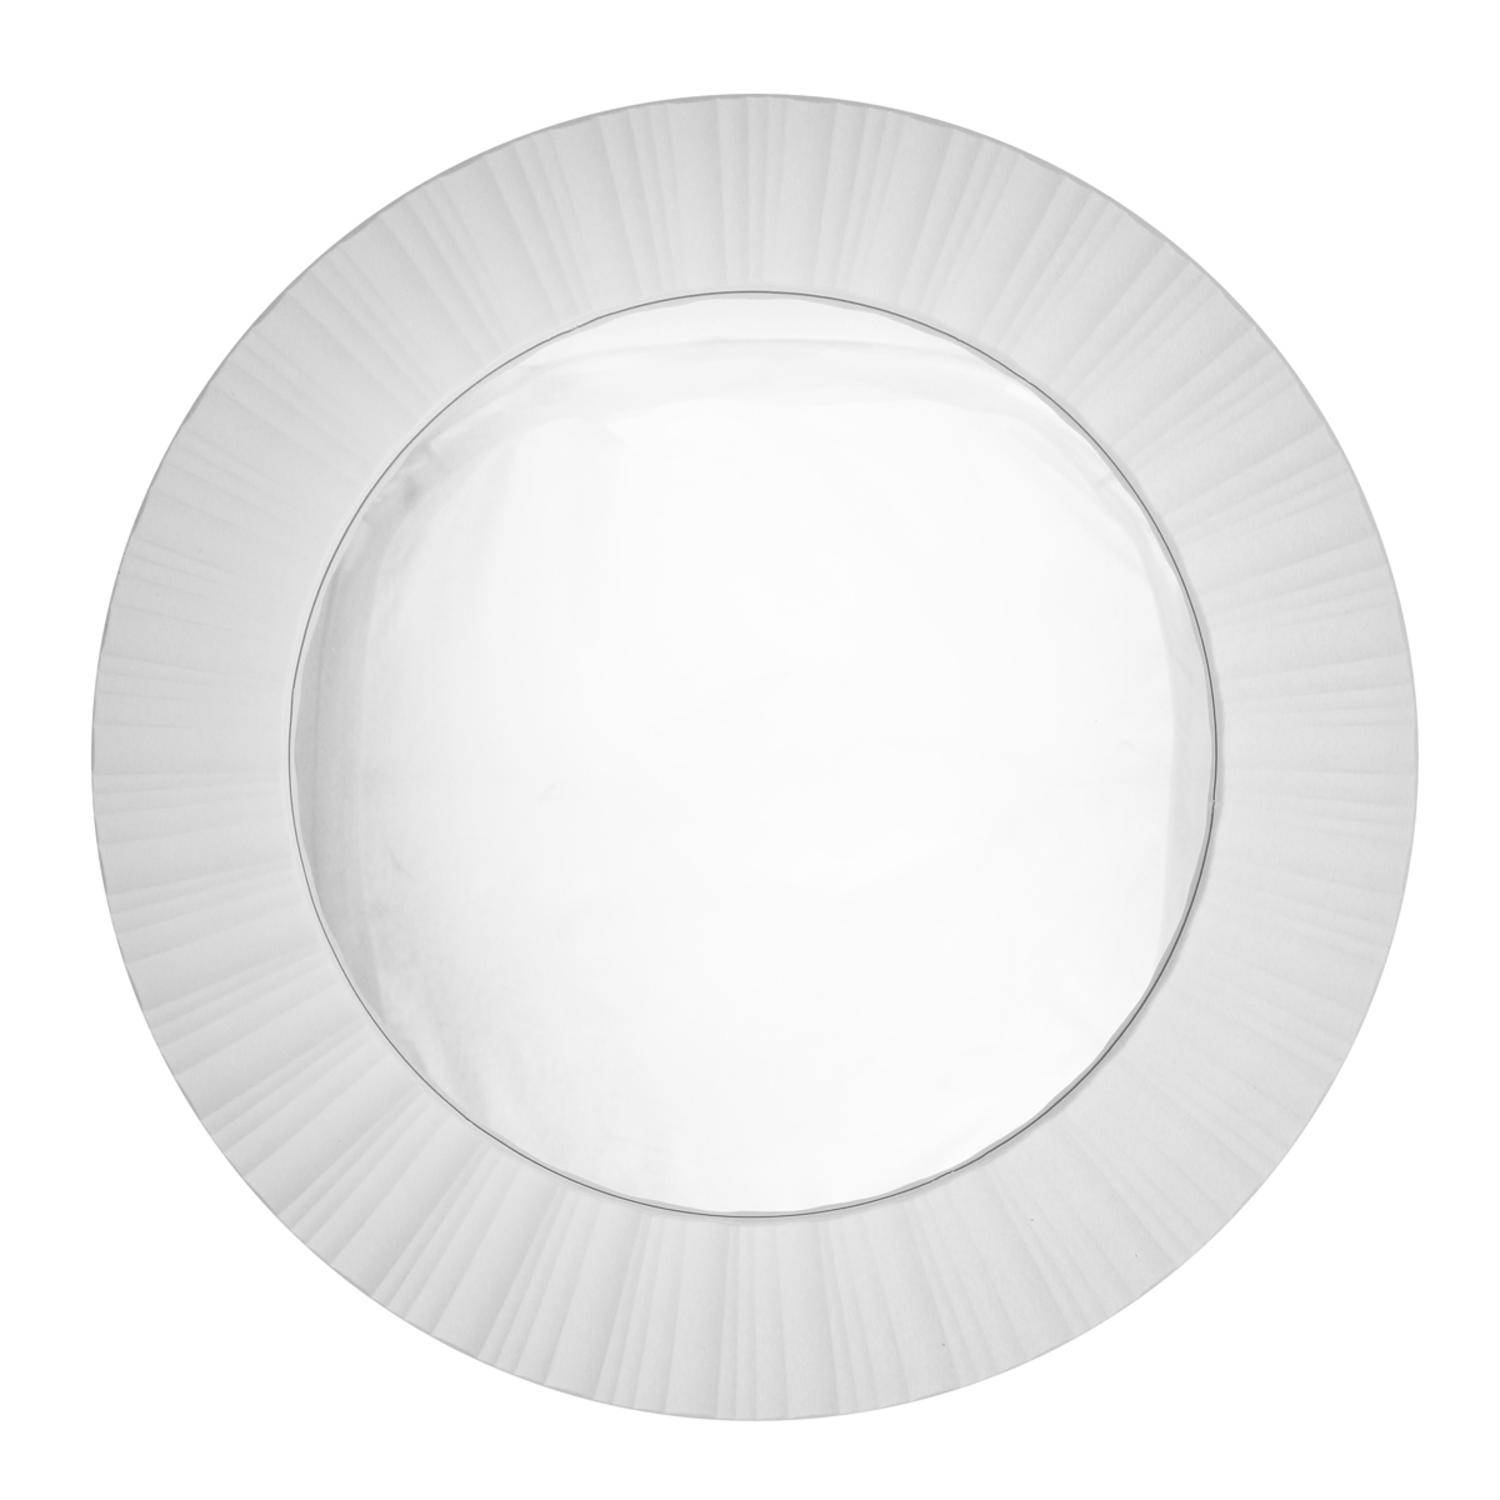 Decorative Mirrors with White Decorative Mirrors (Image 13 of 25)